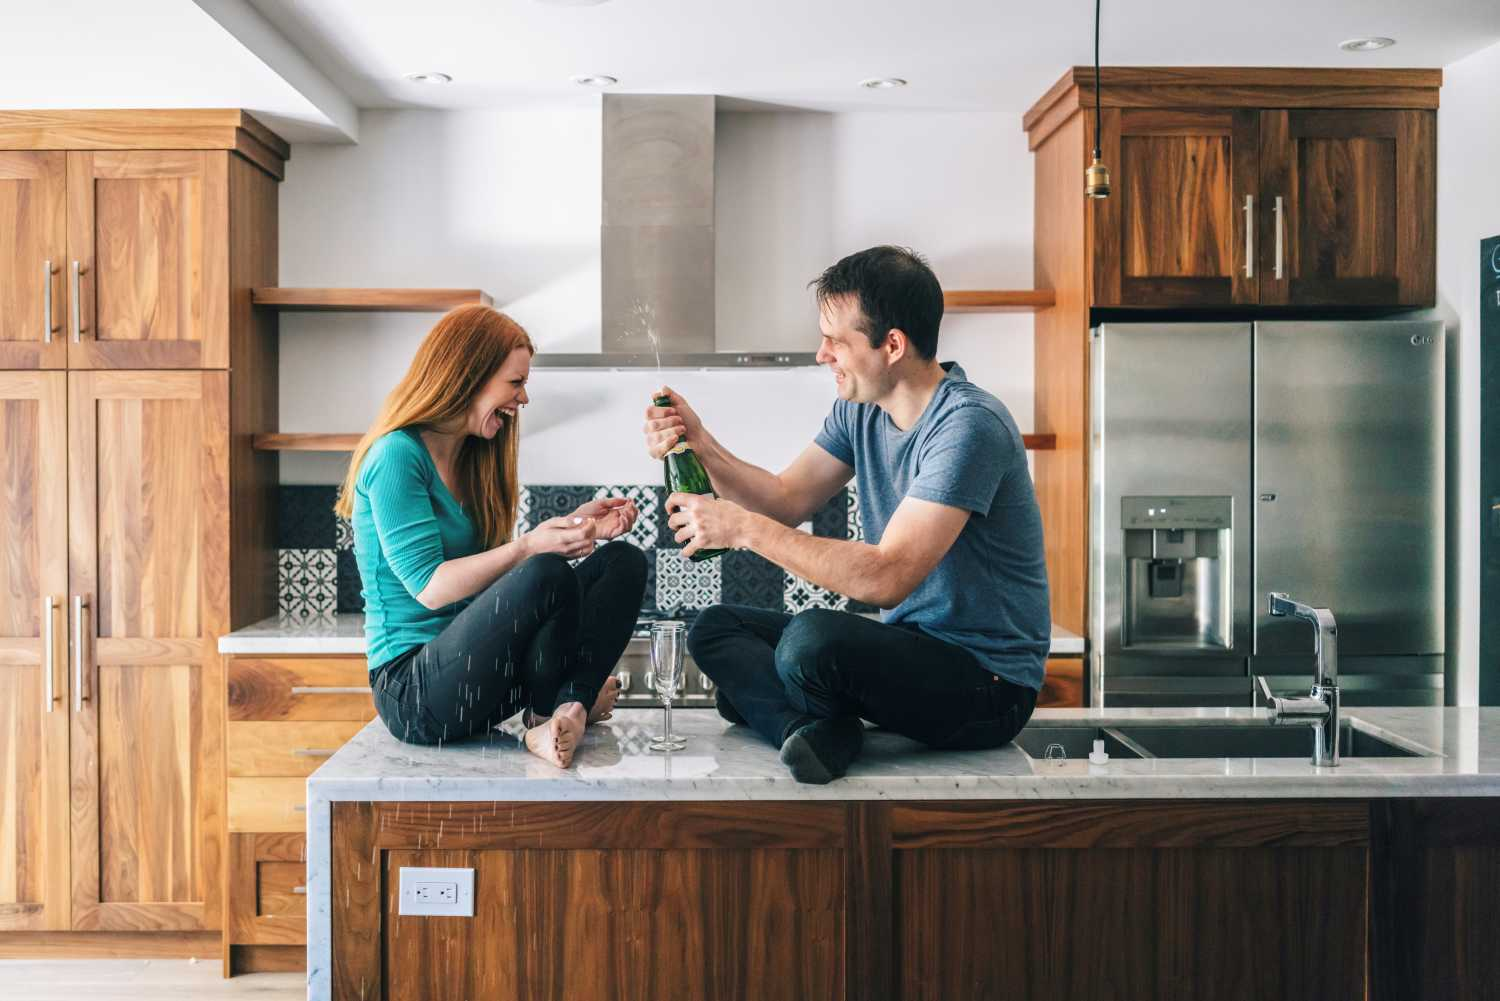 A couple cracking open a bottle of champagne while sitting on kitchen worktops